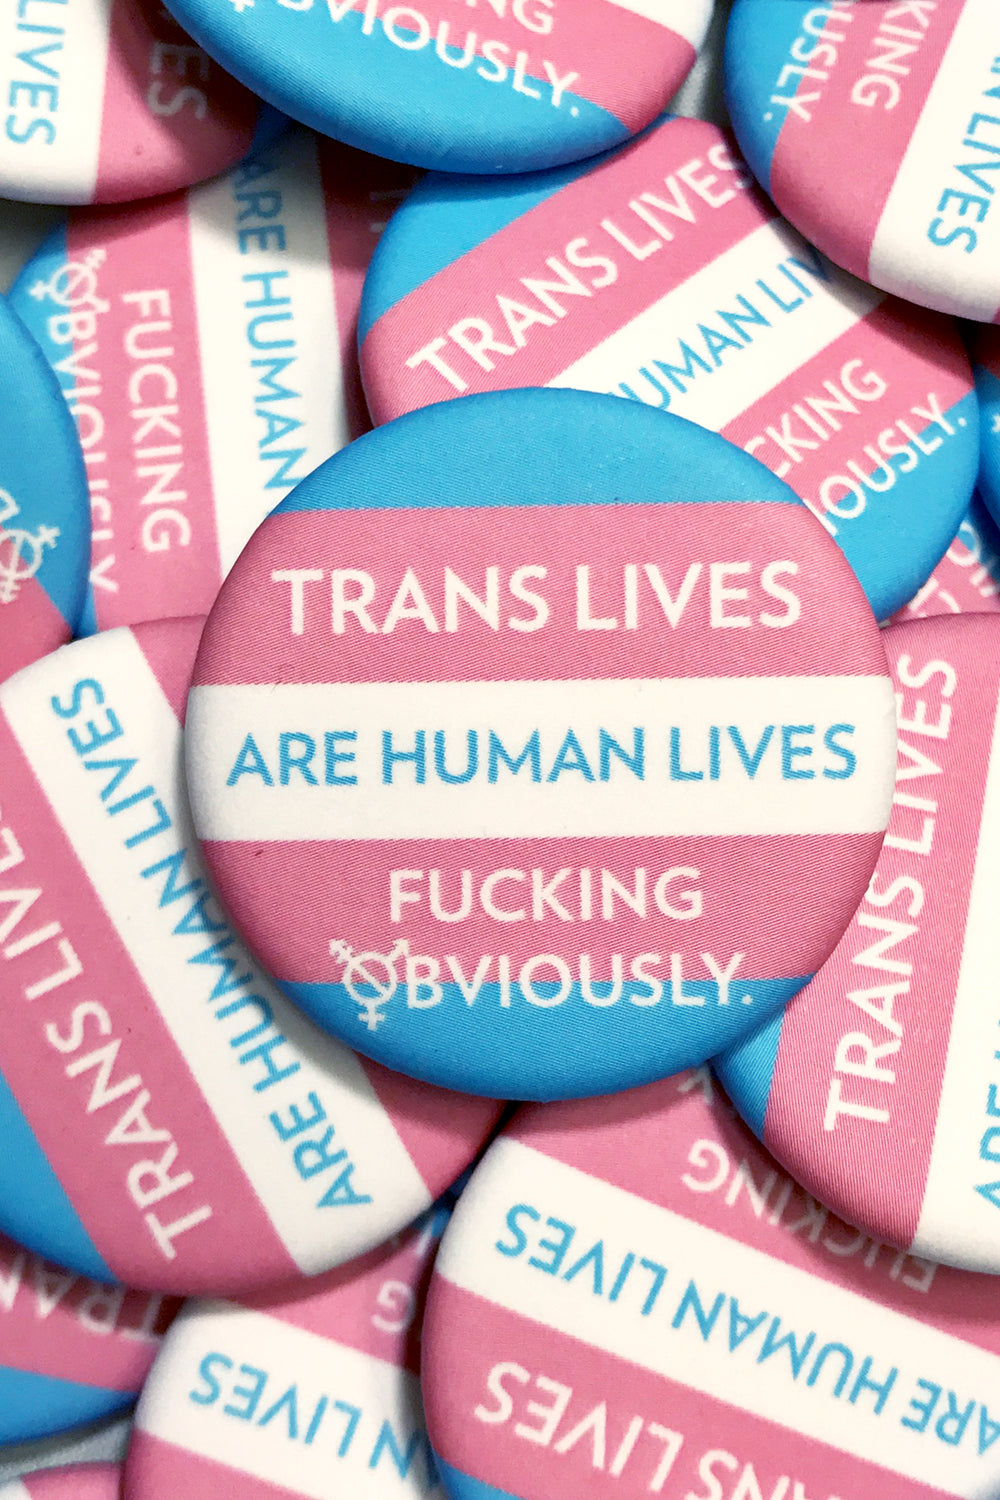 TRANS LIVES ARE HUMAN LIVES BUTTON